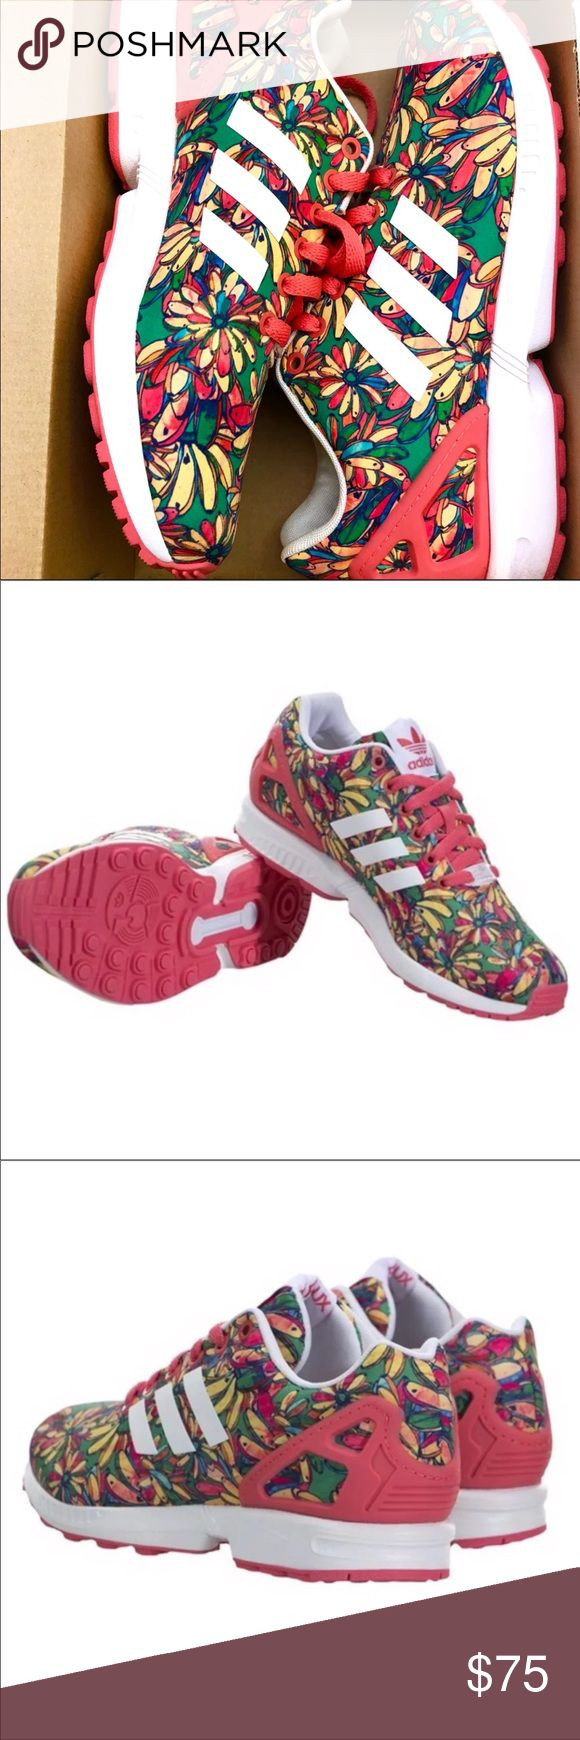 New Adidas Athletic Floral Shoes Adidas Zx flux floral multi-color athletic shoes. Coral/ Red color. Women - size 8.5. Great condition, as new! Only worn once. The shoes come with their original box. adidas Shoes Athletic Shoes